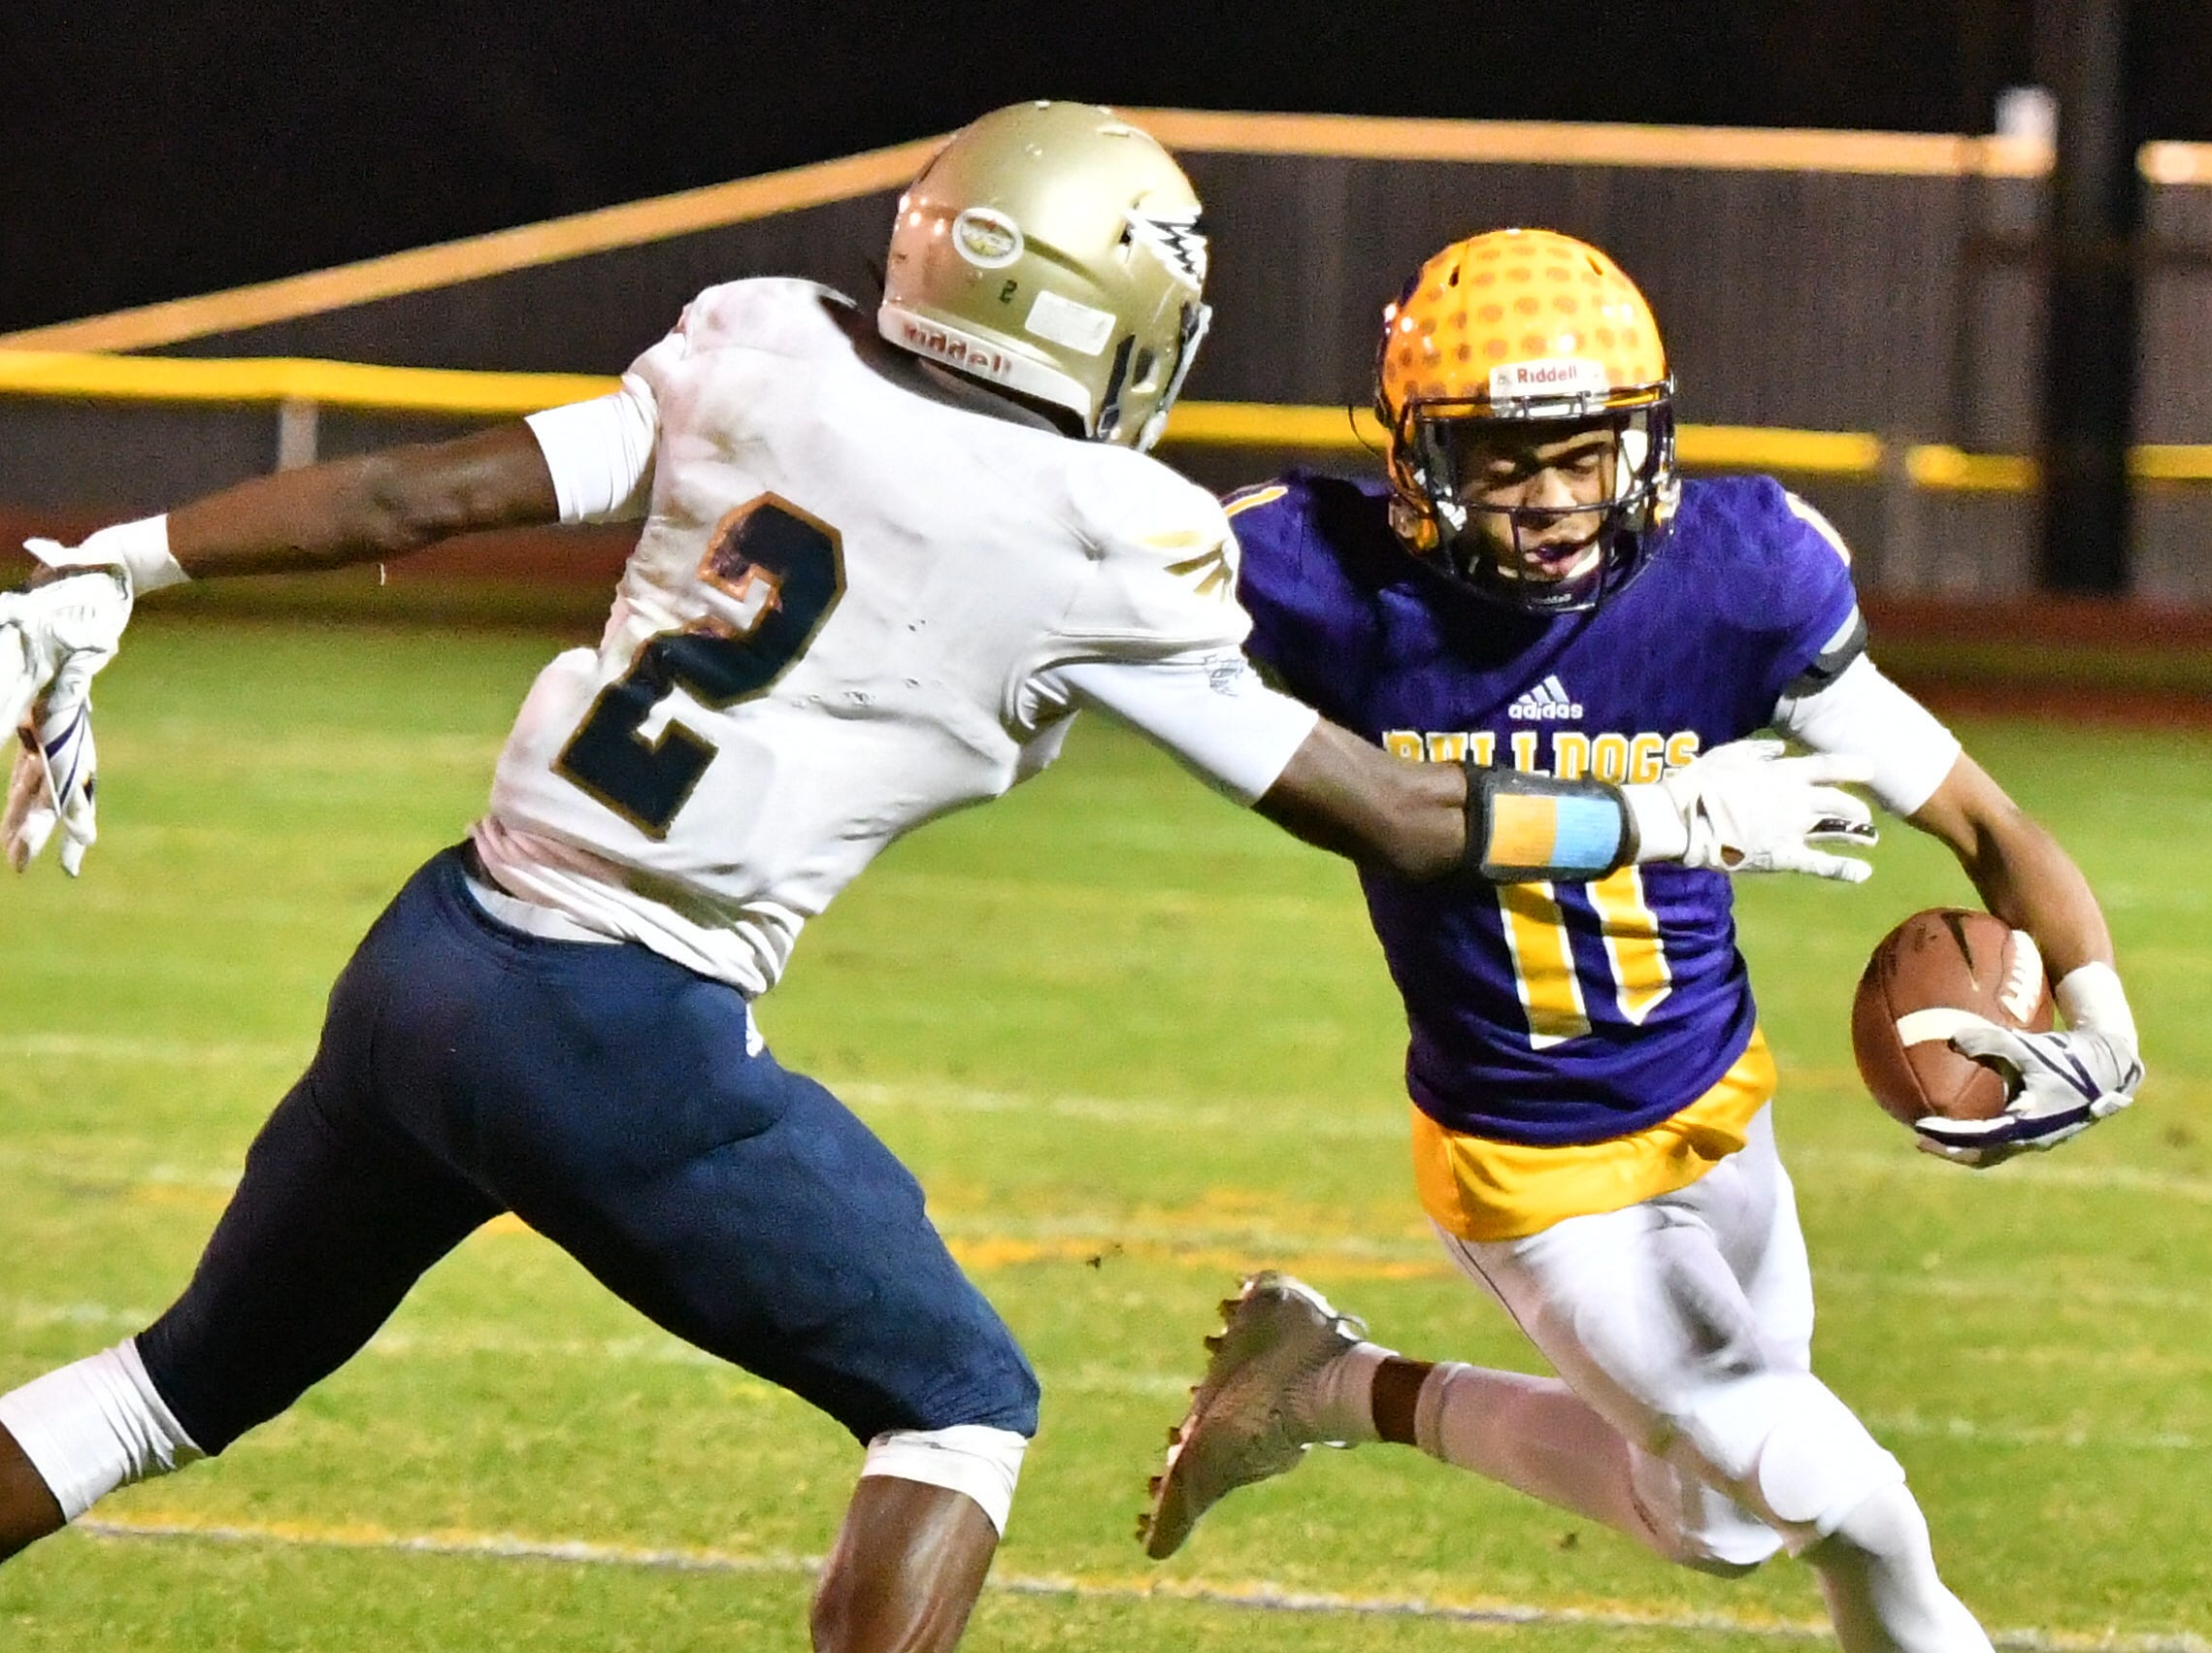 Smyrna's Tyler Lansden looks for running room after a catch as Independence's T.J. Sheffield prepares for a tackle Friday.